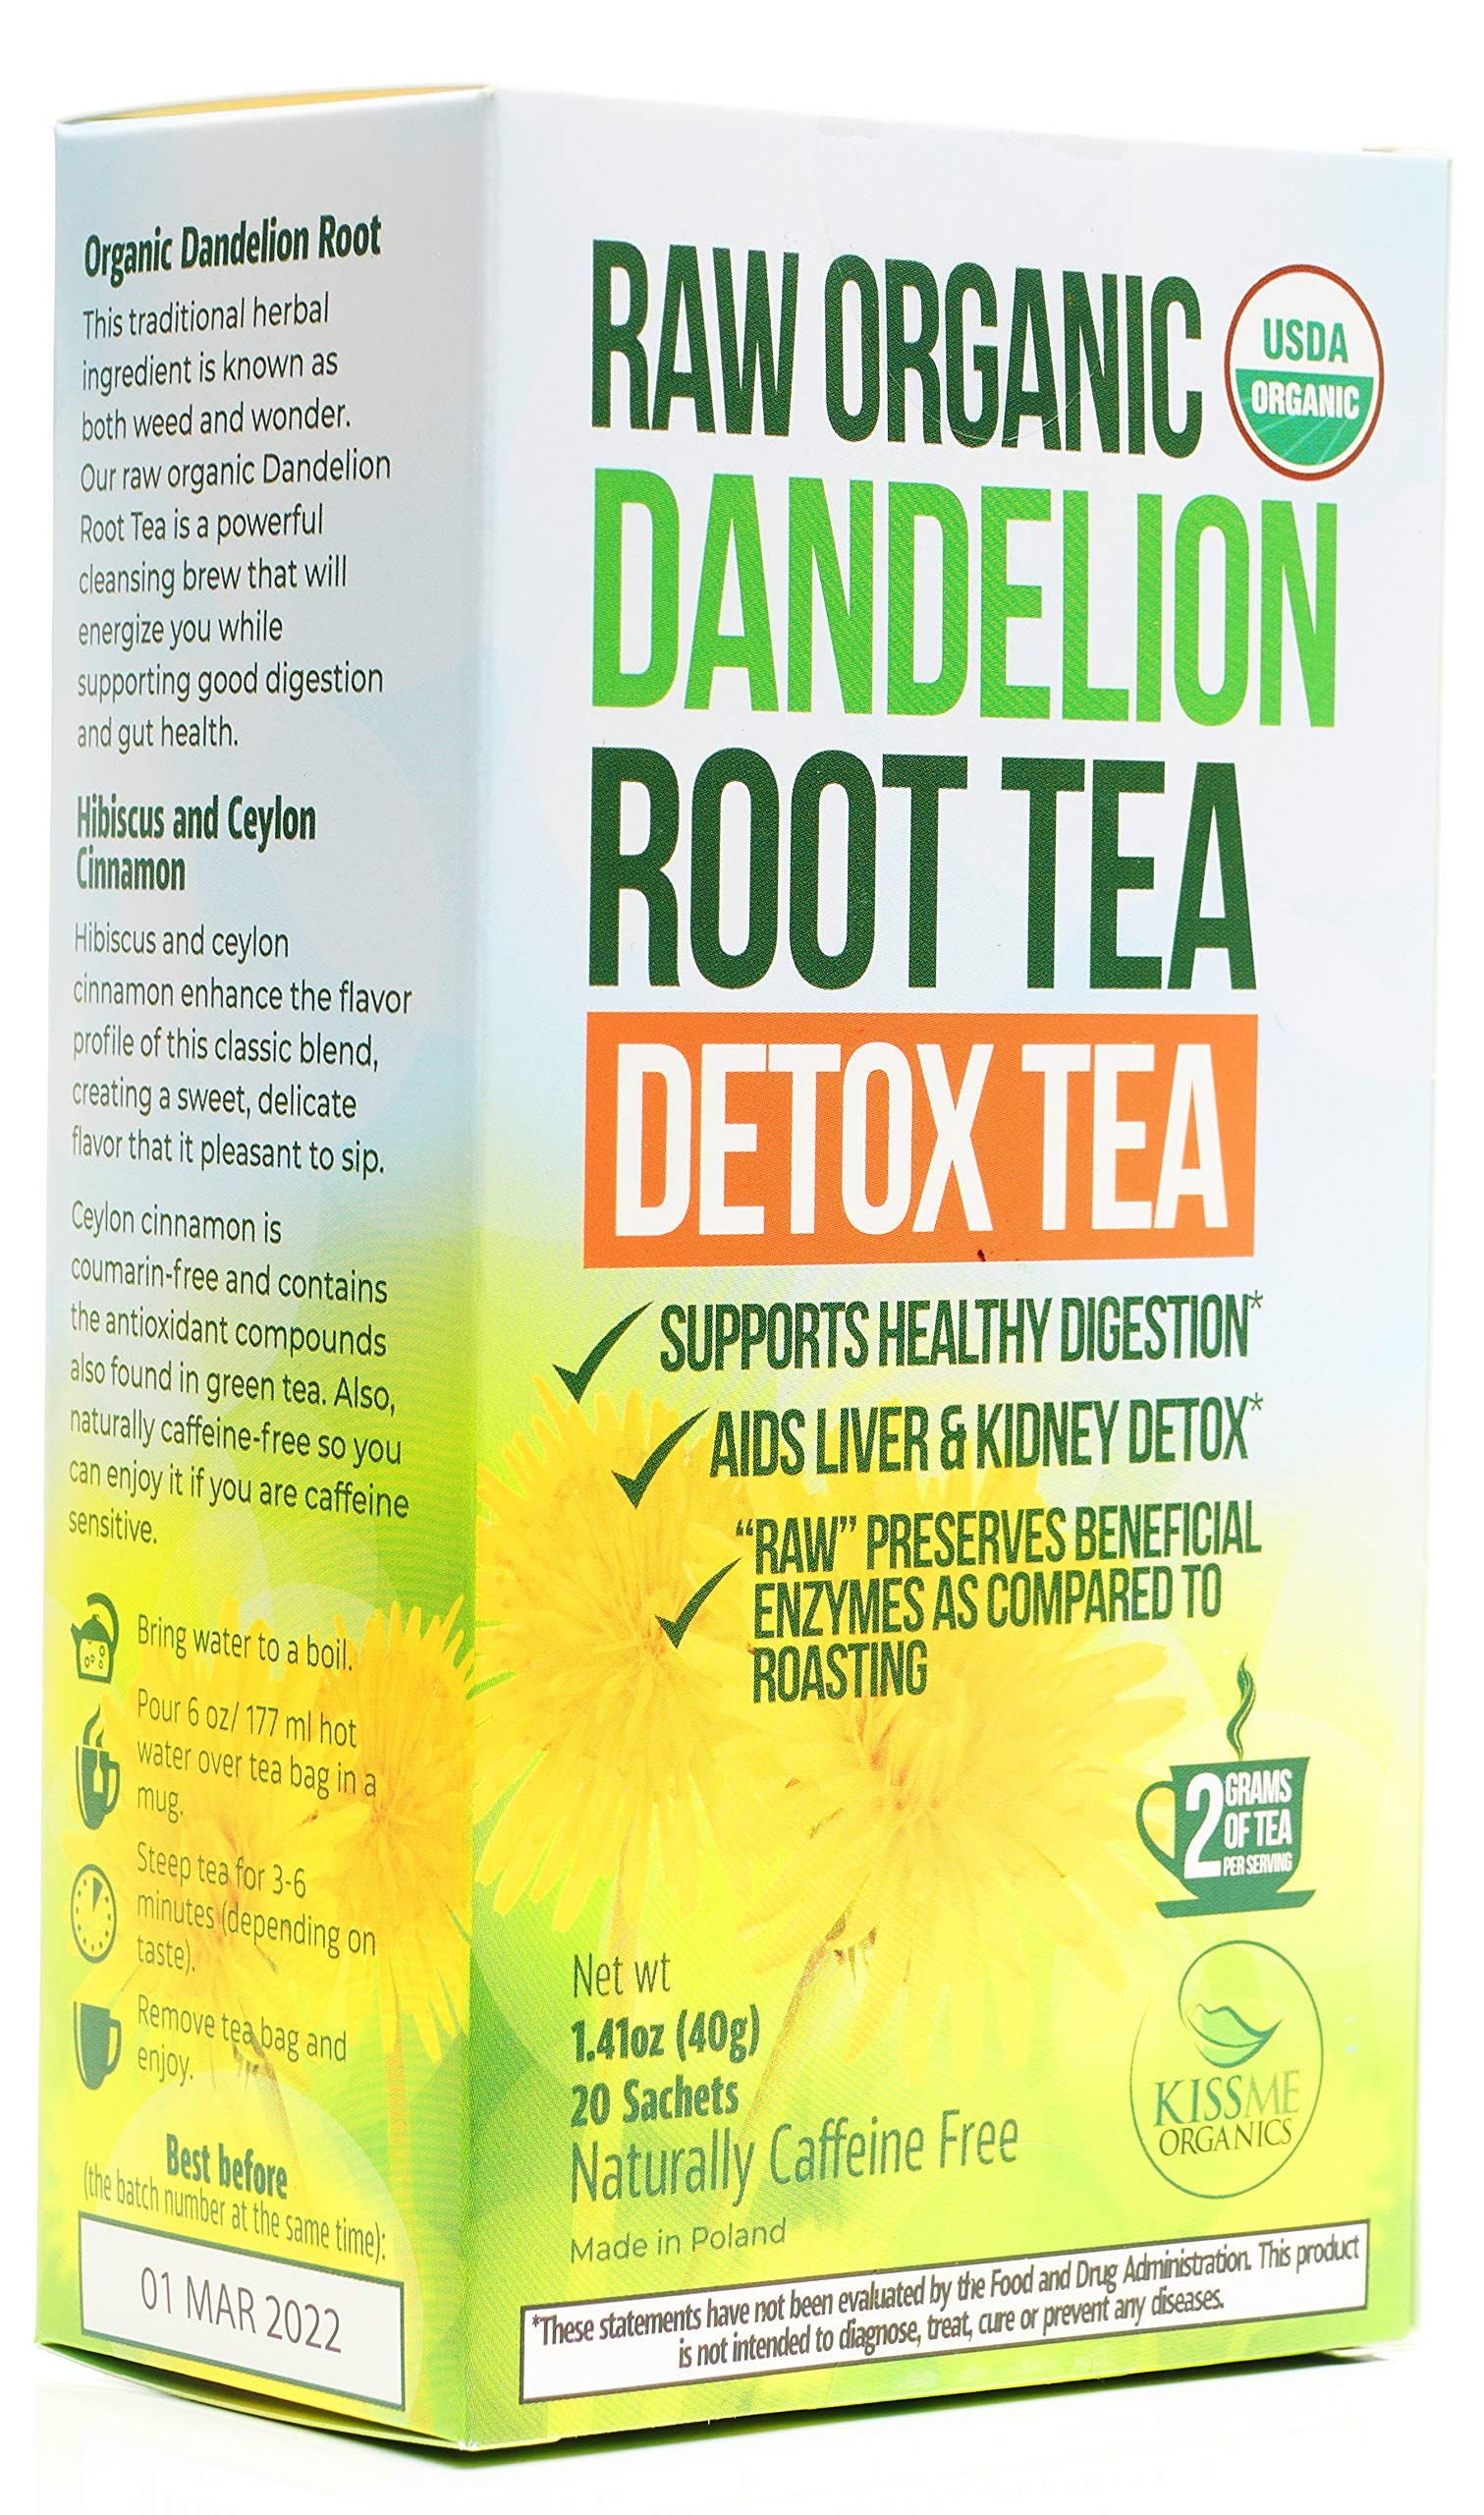 Organic Dandelion Root Tea Detox - Raw Vitamin Rich Digestive - 1 Pack (20 Bags, 2g Each) - Helps Improve Digestion and Immune System - Anti-inflammatory and Antioxidant - by Kiss Me Organics